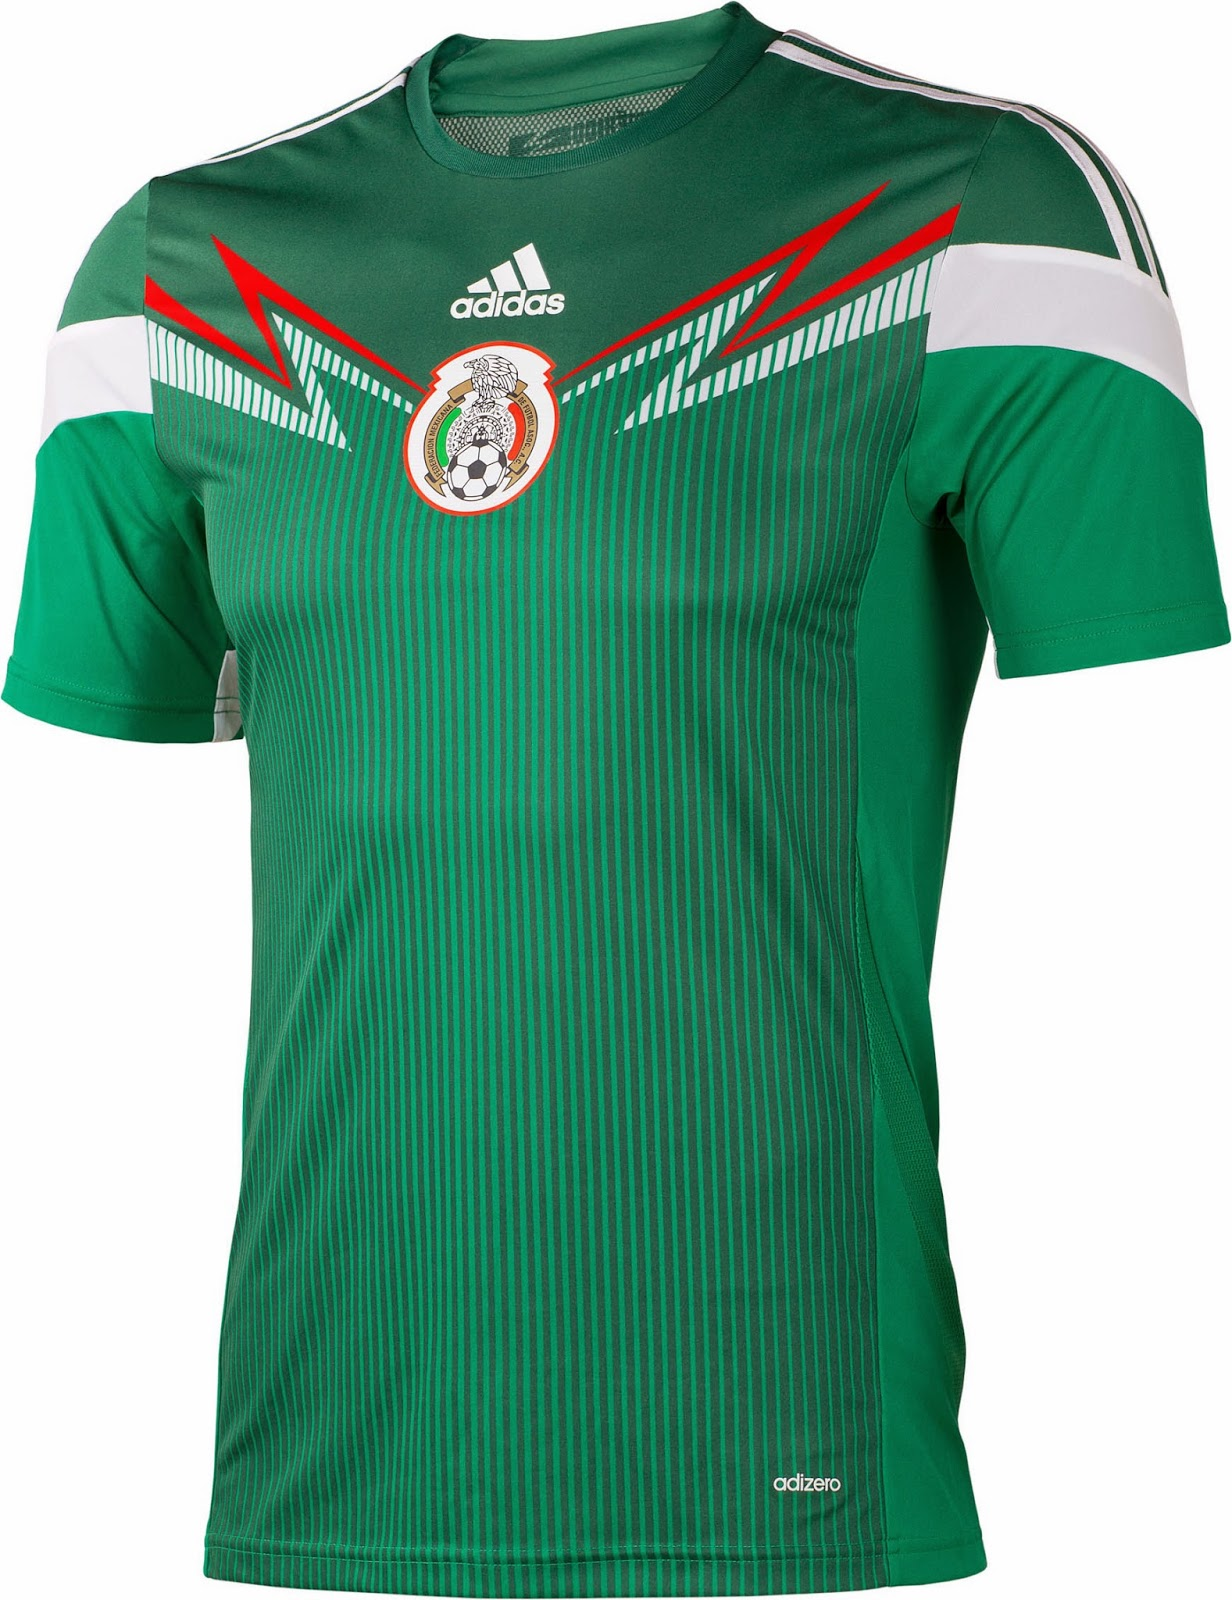 timeless design 3ed84 2a54f 2014 World Cup Jerseys: Mexico 2014 World Cup Home Kit